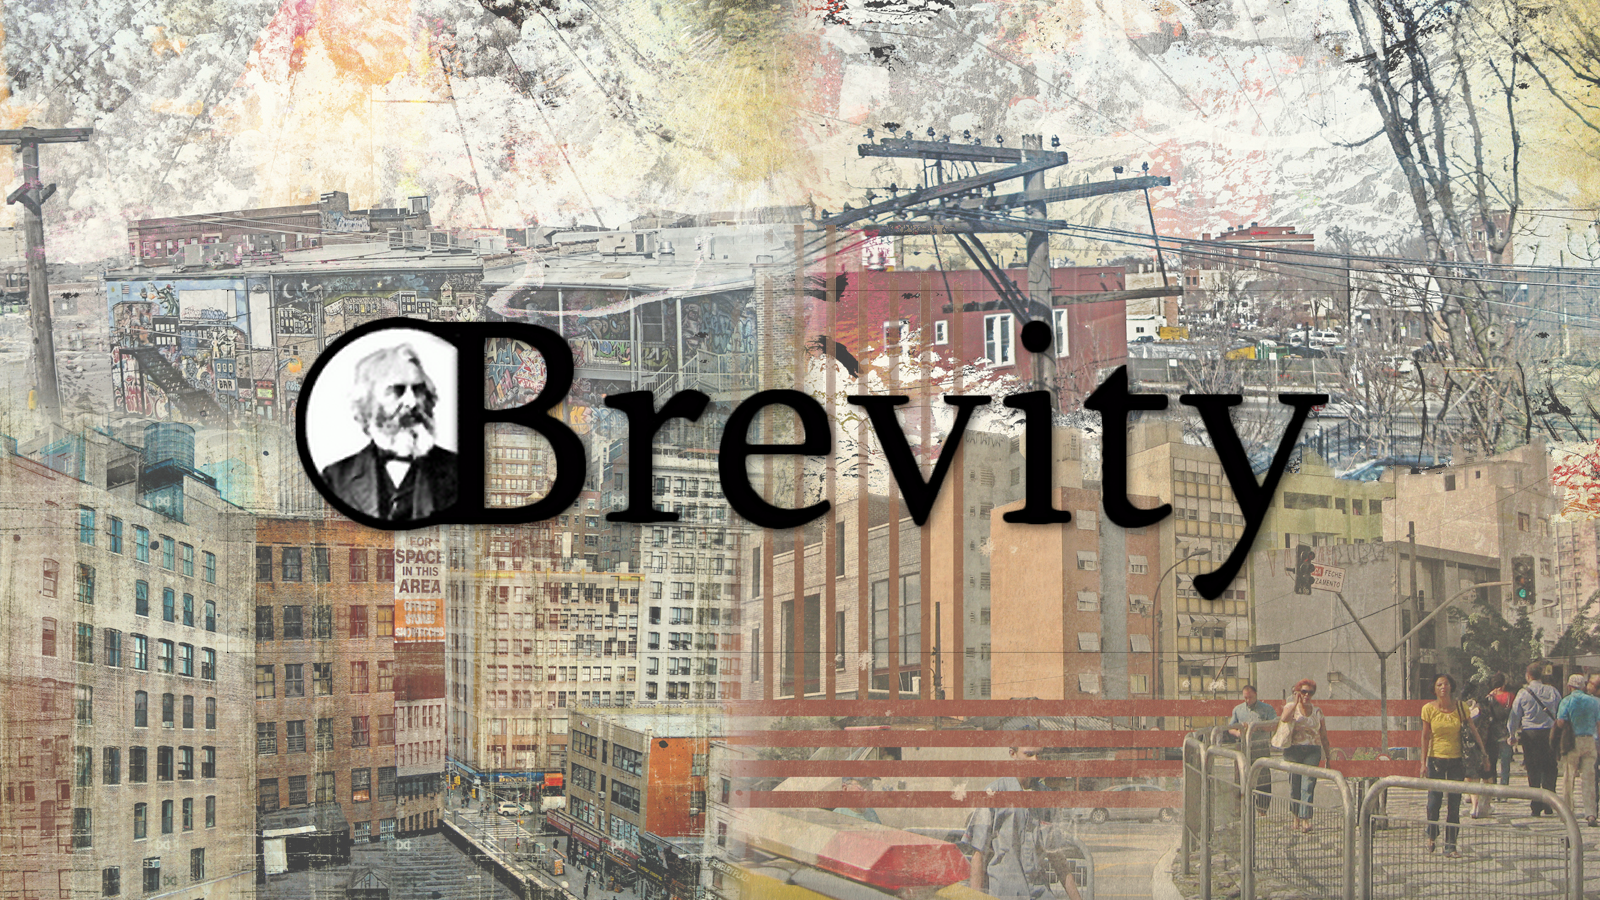 Composite image of urban scenes and art behind the Brevity magazine logo